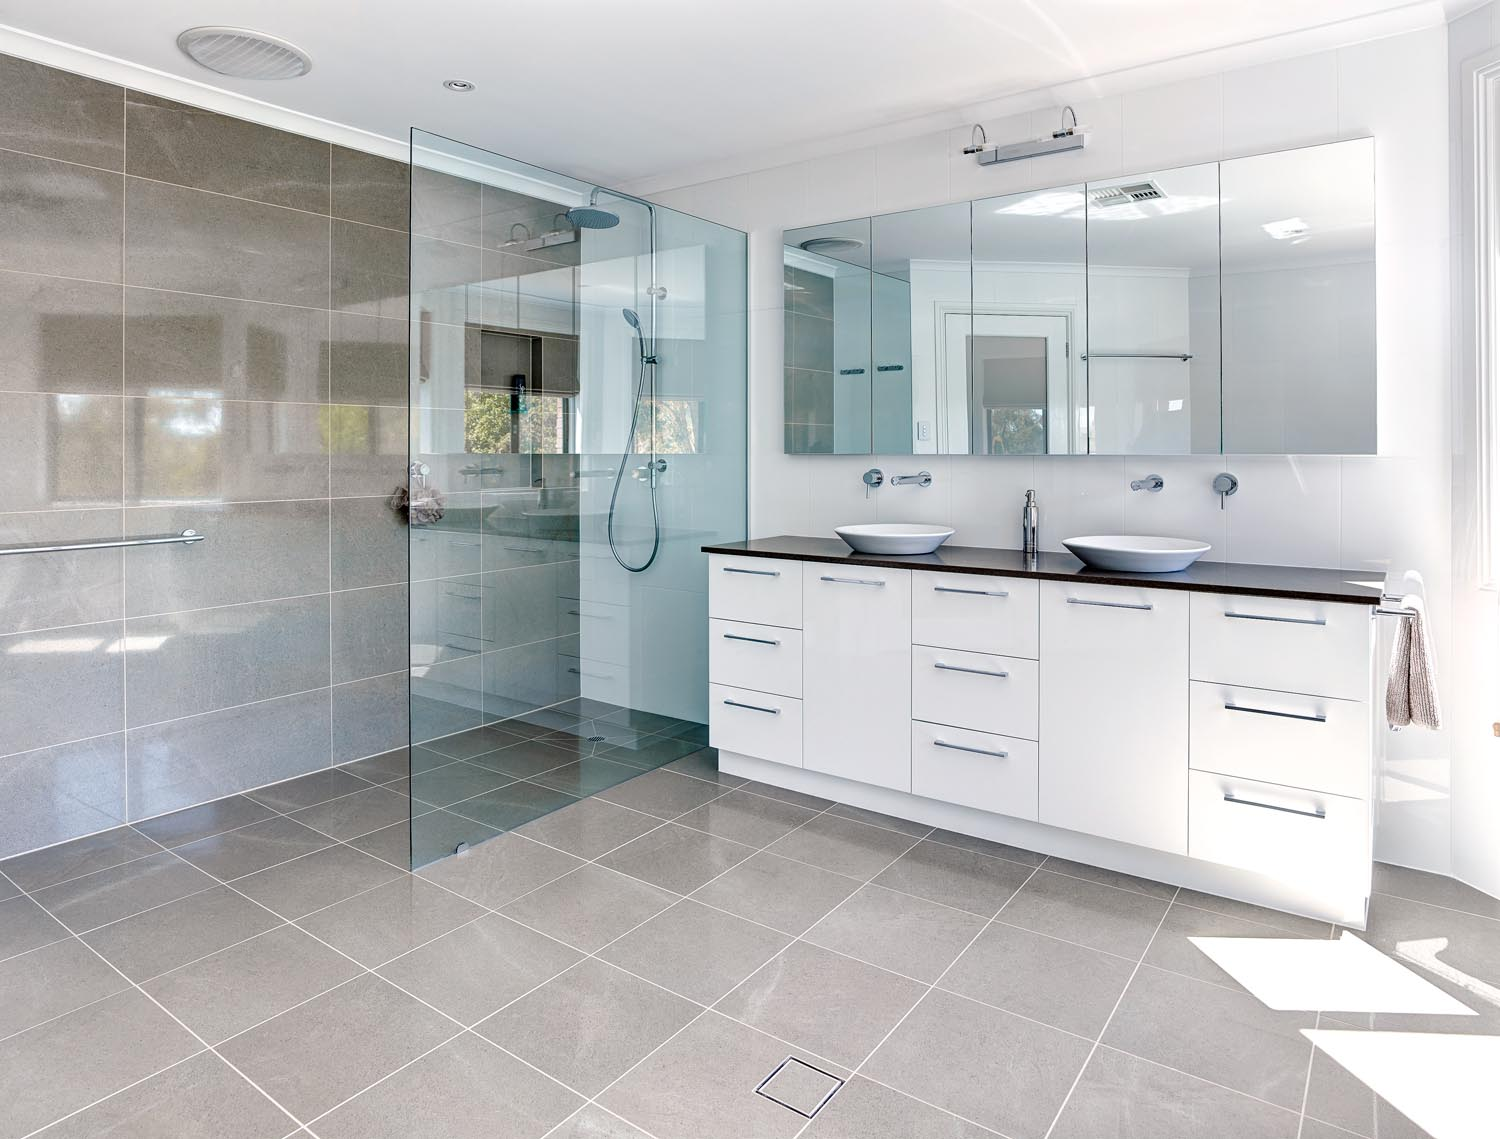 Luxury ensuite bathroom design - Completehome